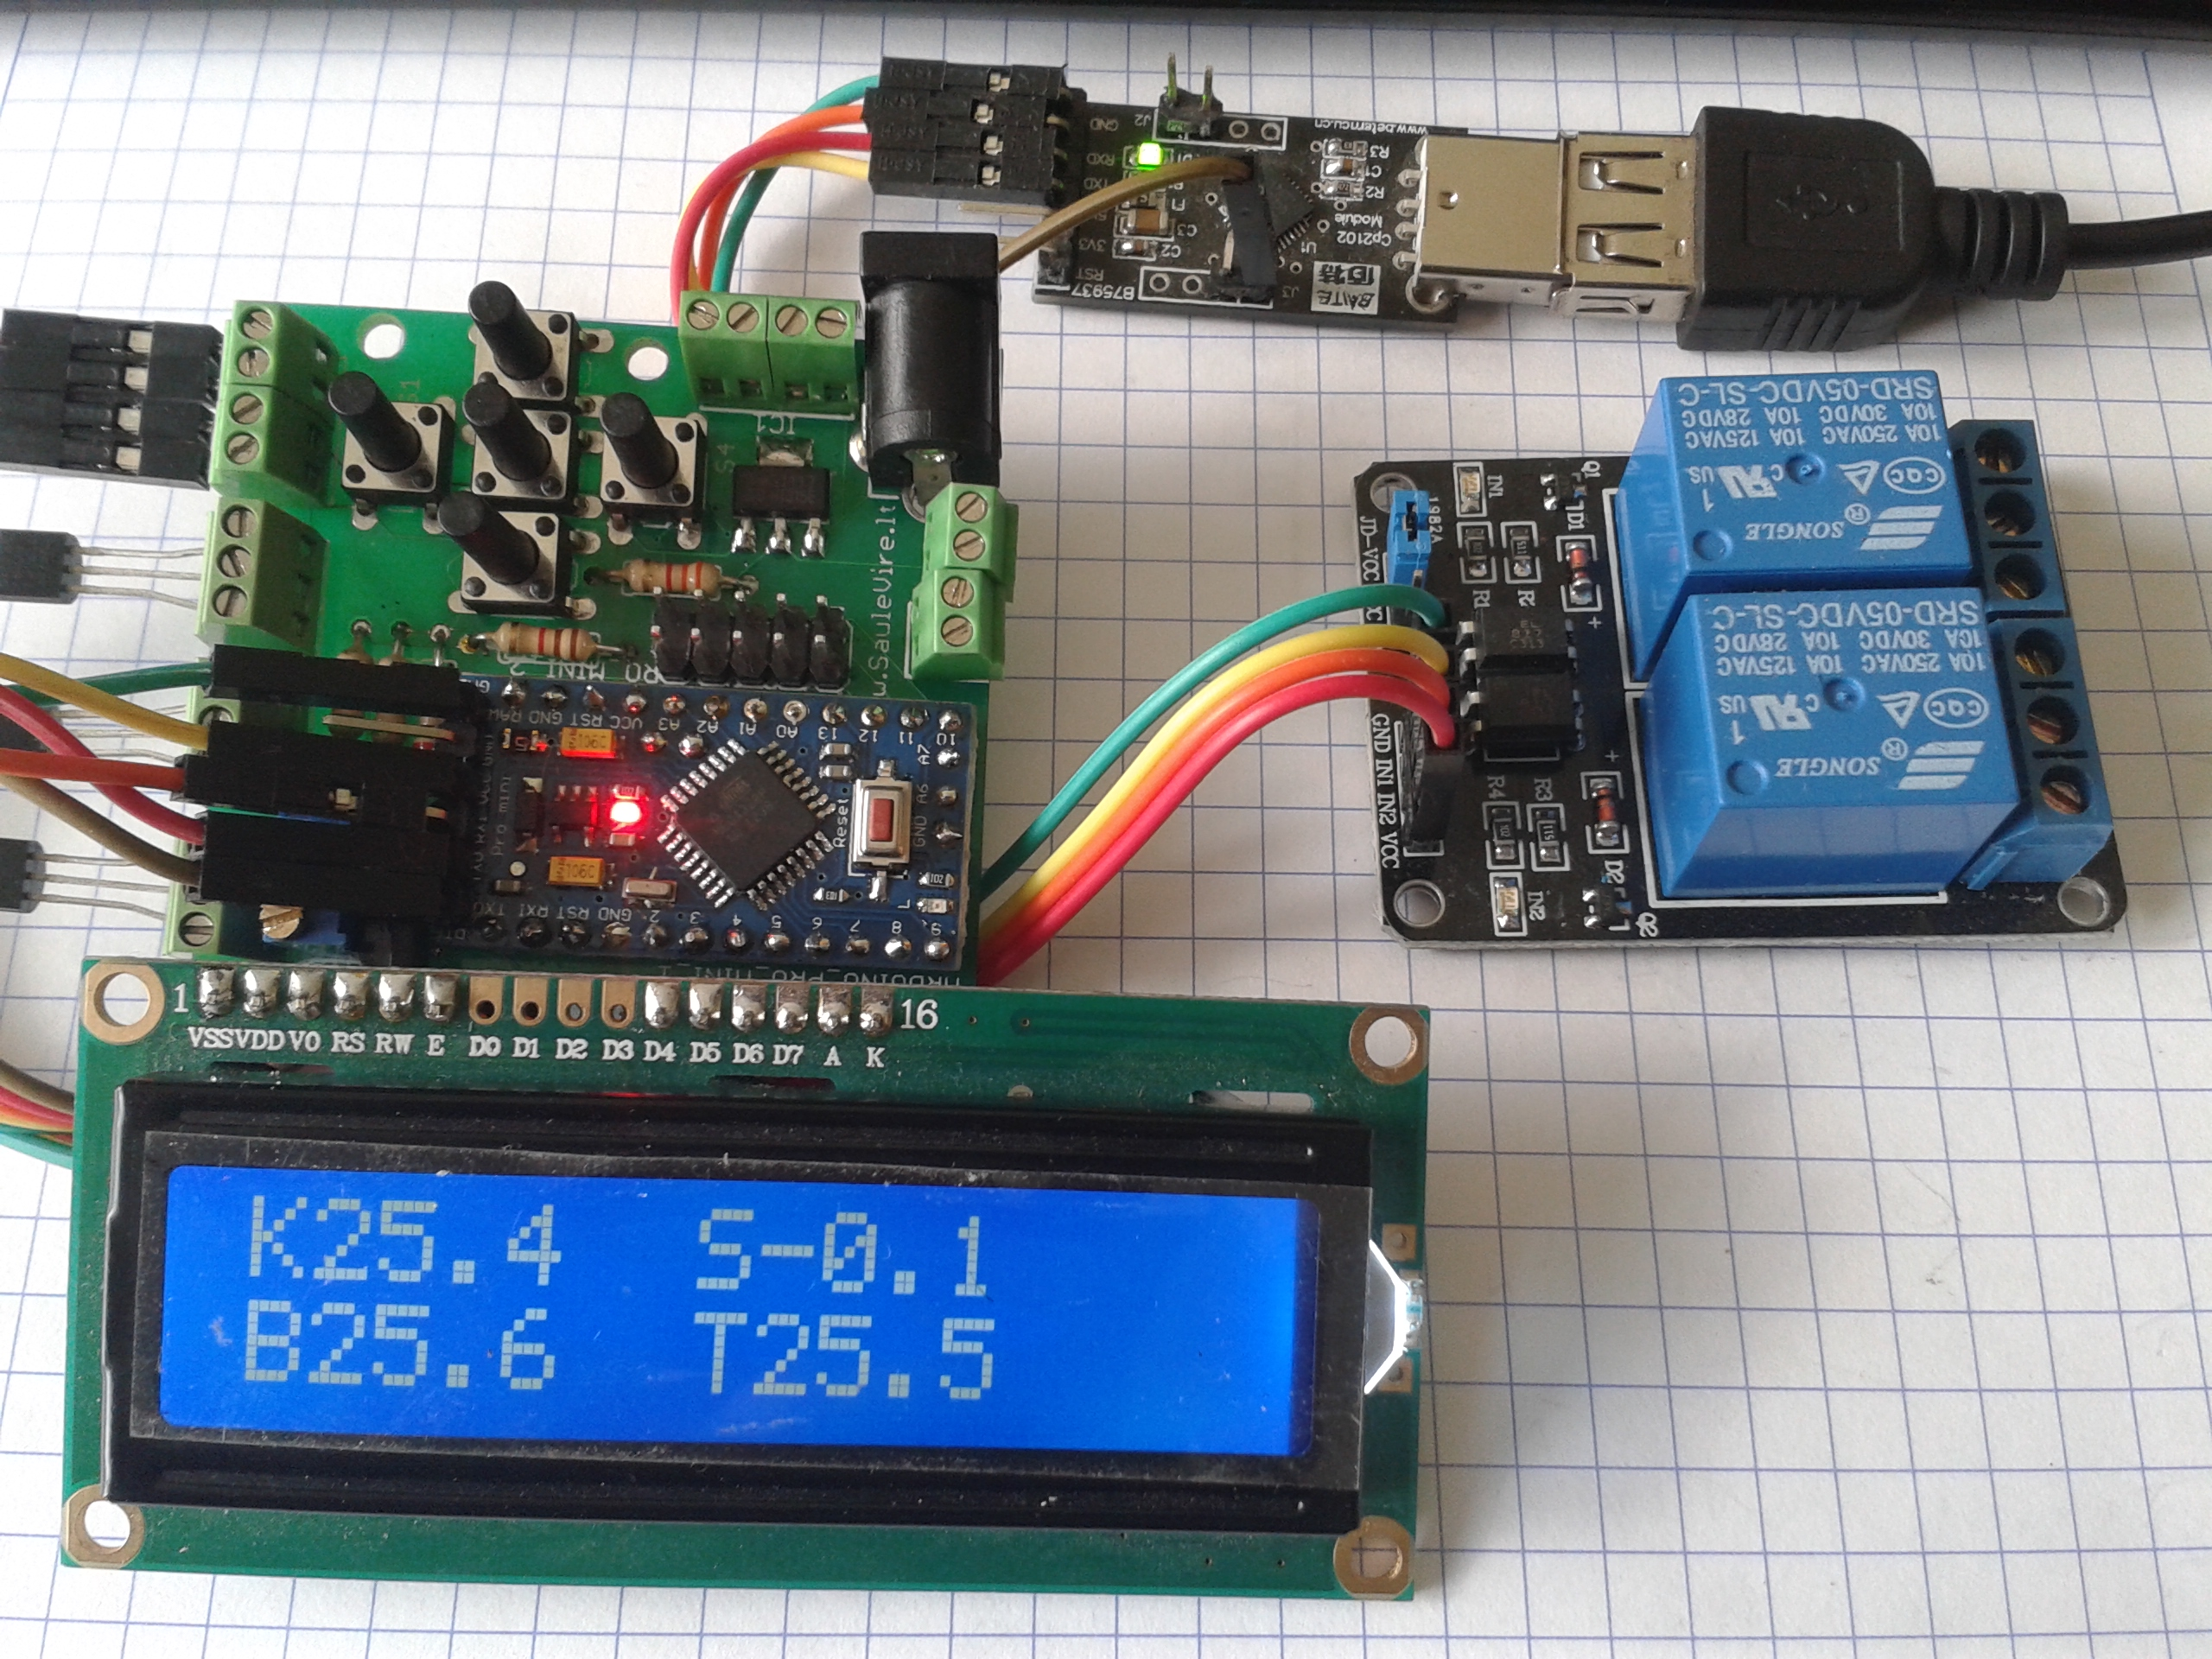 Hot water solar collector controller with thermostat v1.2